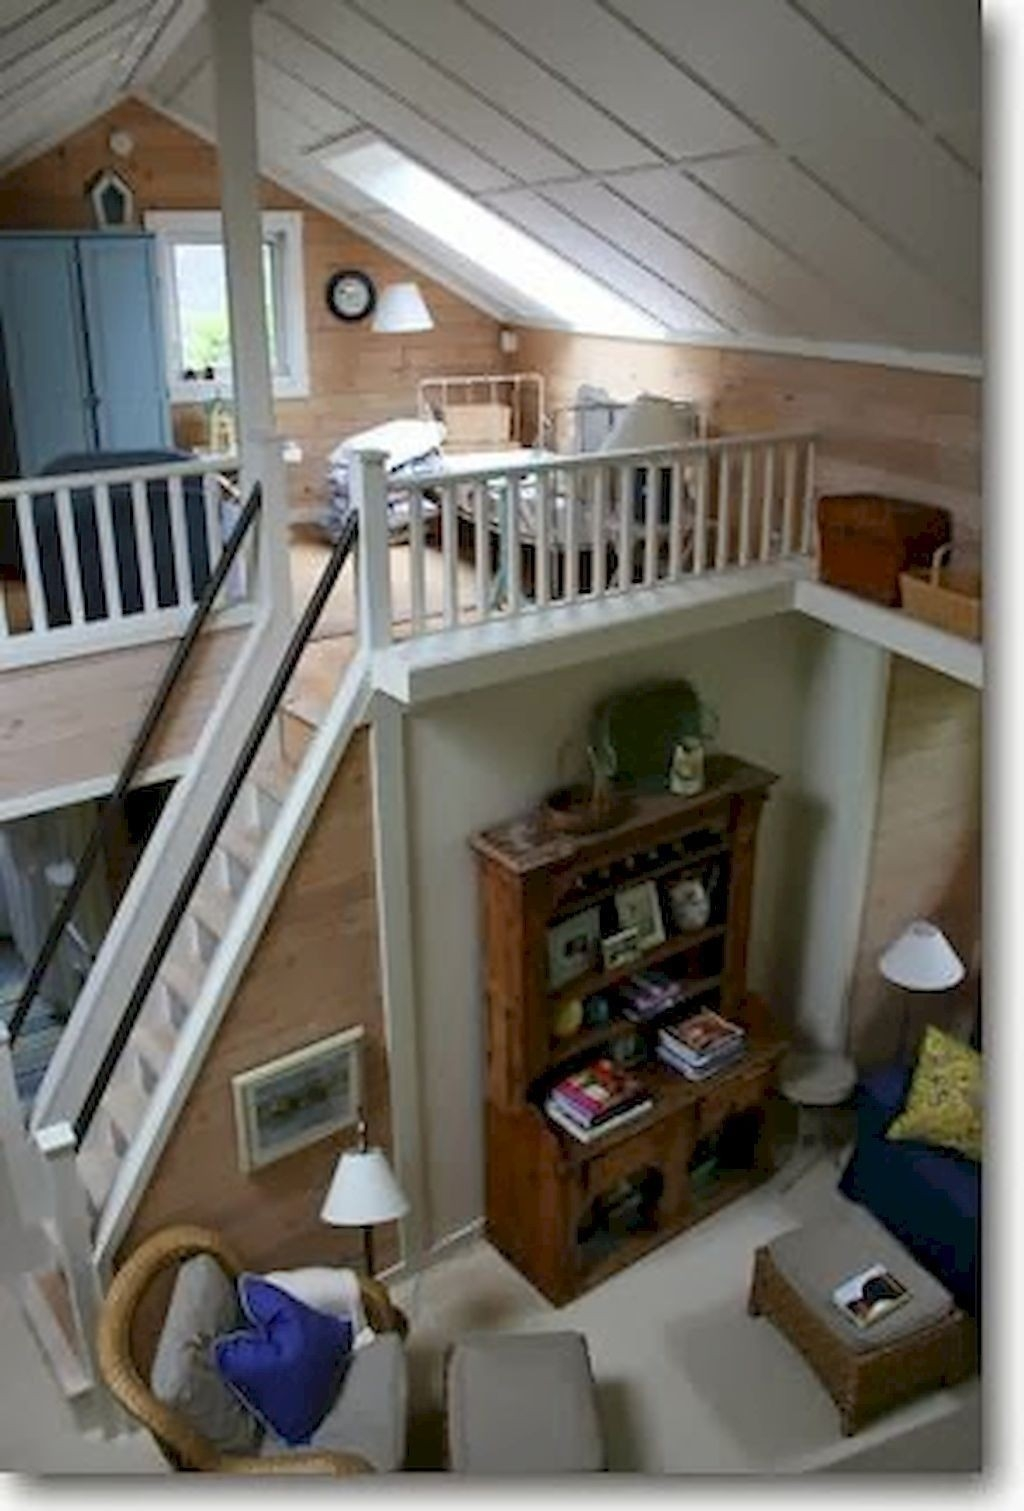 Loft With Stairs For 2020 Ideas On Foter | Design Of Stairs In Small House | Living Room | Family House | Interior | Spiral | 4 Foot